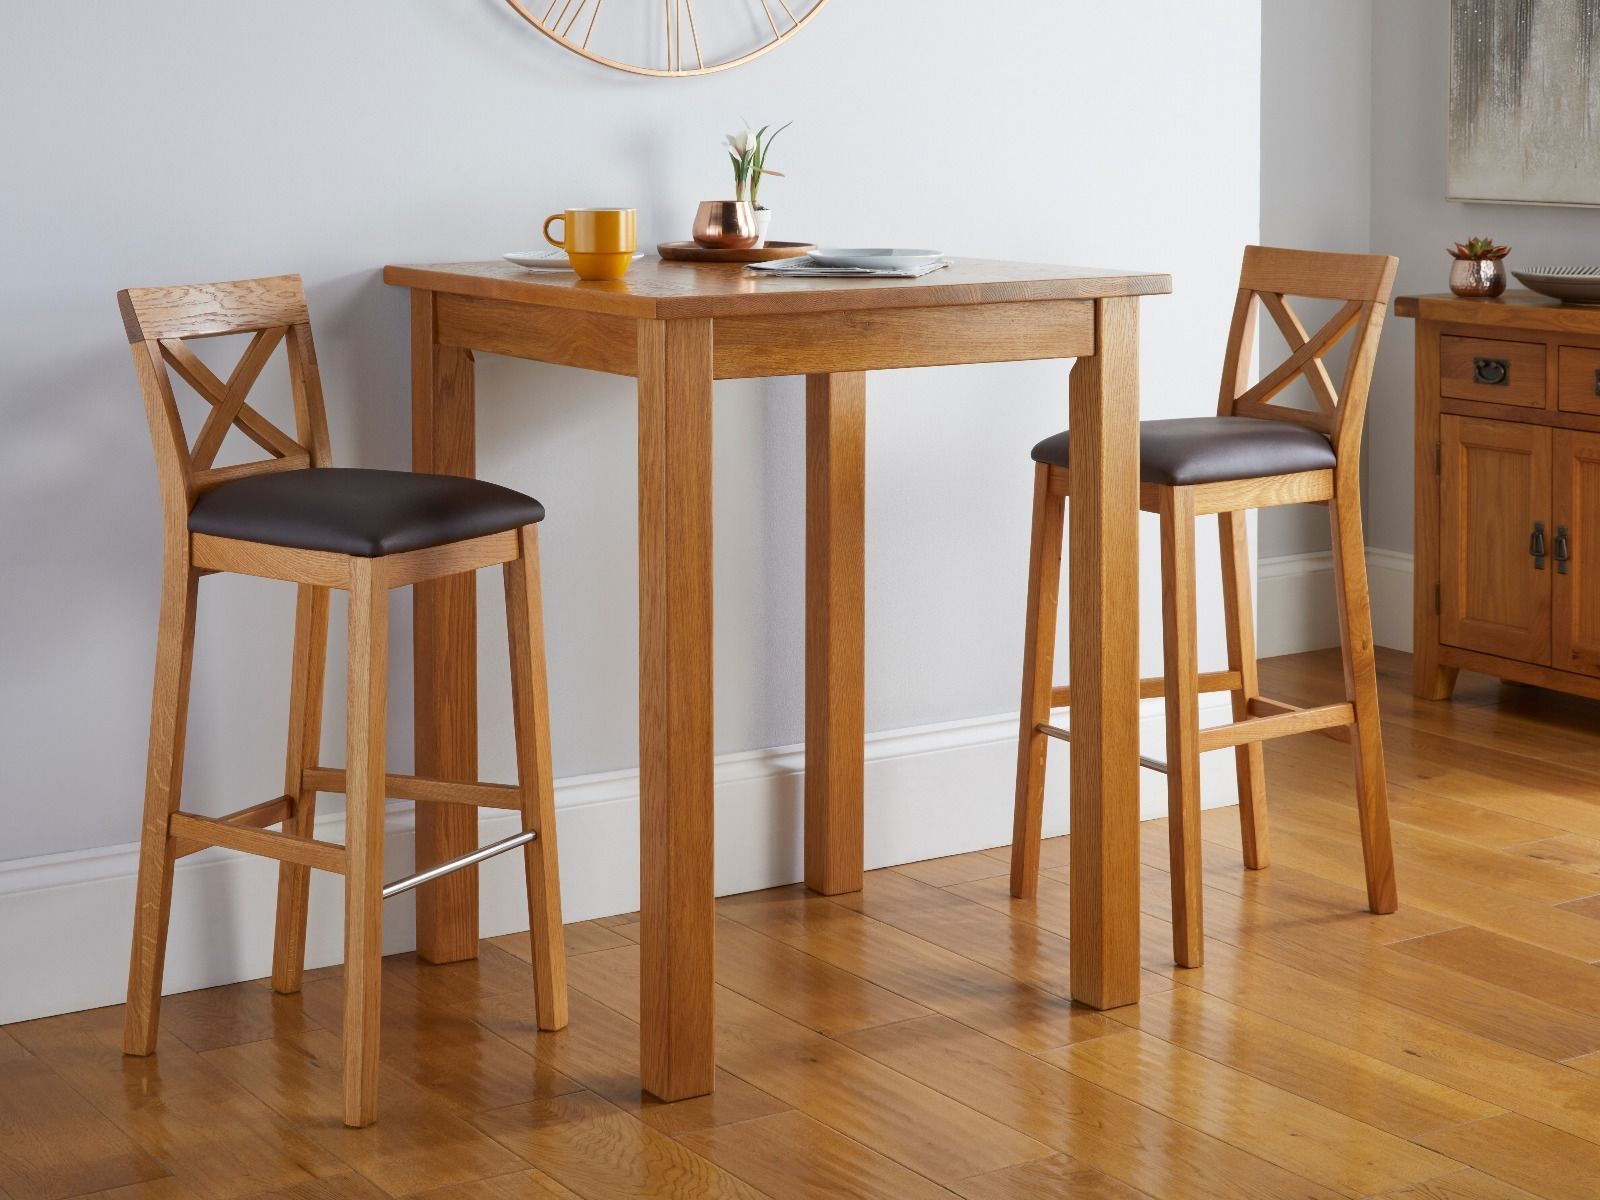 Country Oak Tall Breakfast Bar Table 80cm Square